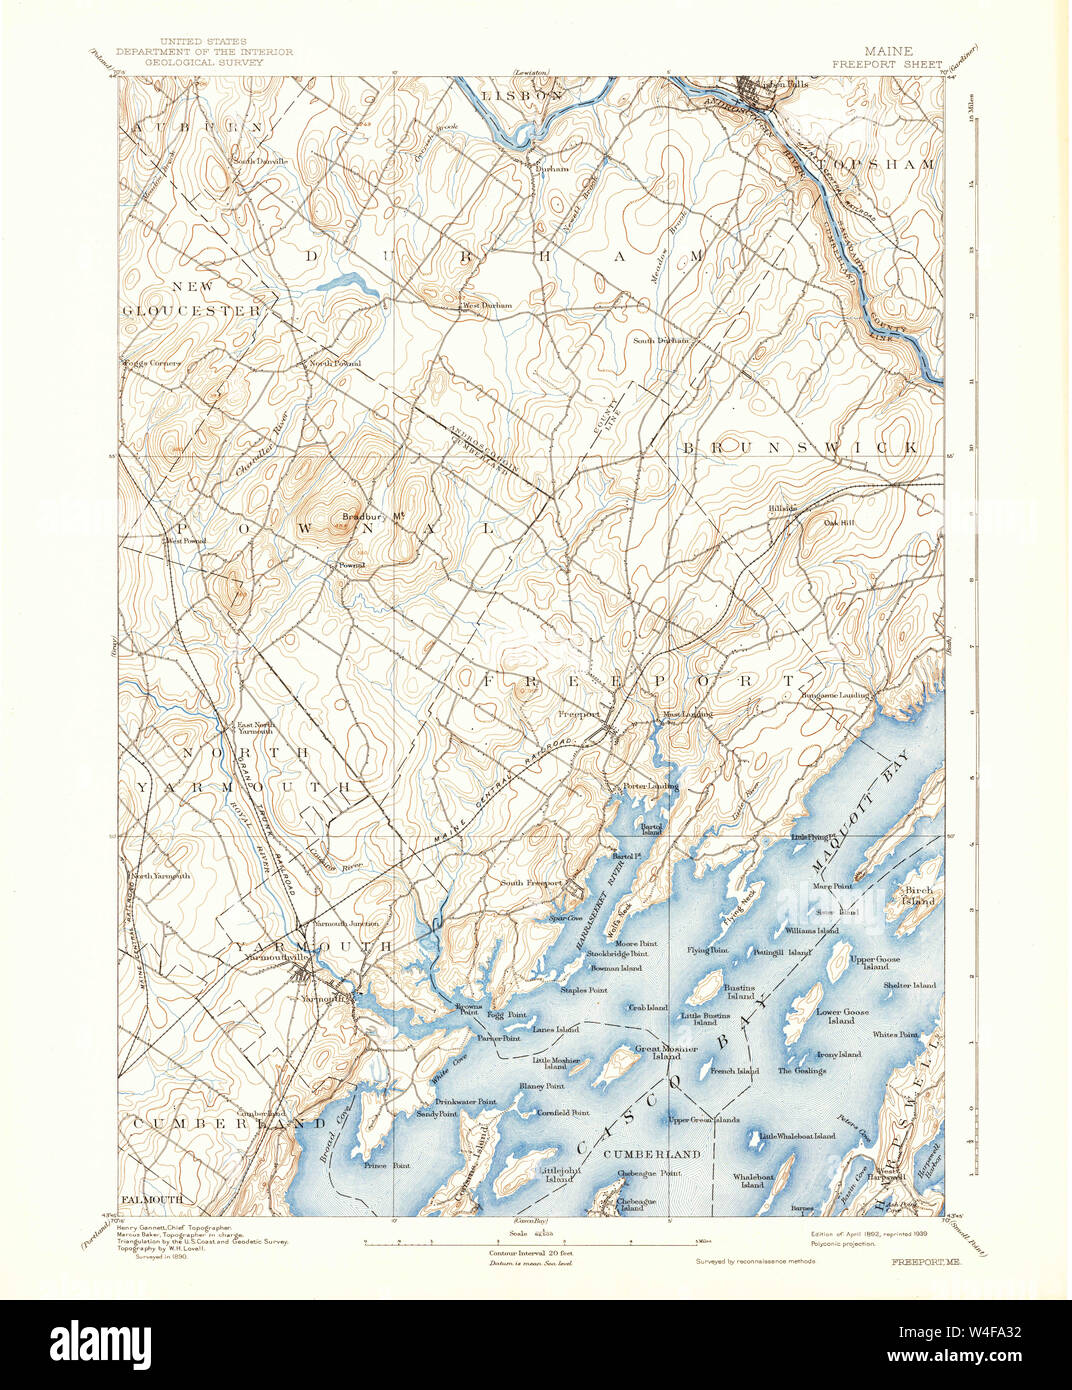 Maine USGS Historical Map Freeport 460410 1892 62500 ... on arlington maine map, state of maine map, freeman township maine map, cedar lake maine map, merrymeeting bay maine map, bar harbor maine map, maine maine map, beaver cove maine map, maine state on usa map, mayfield maine map, hamilton maine map, clearwater maine map, long beach maine map, maine highway map, brentwood maine map, lakeview maine map, quincy maine map, lancaster maine map, katahdin maine map, east grand maine map,